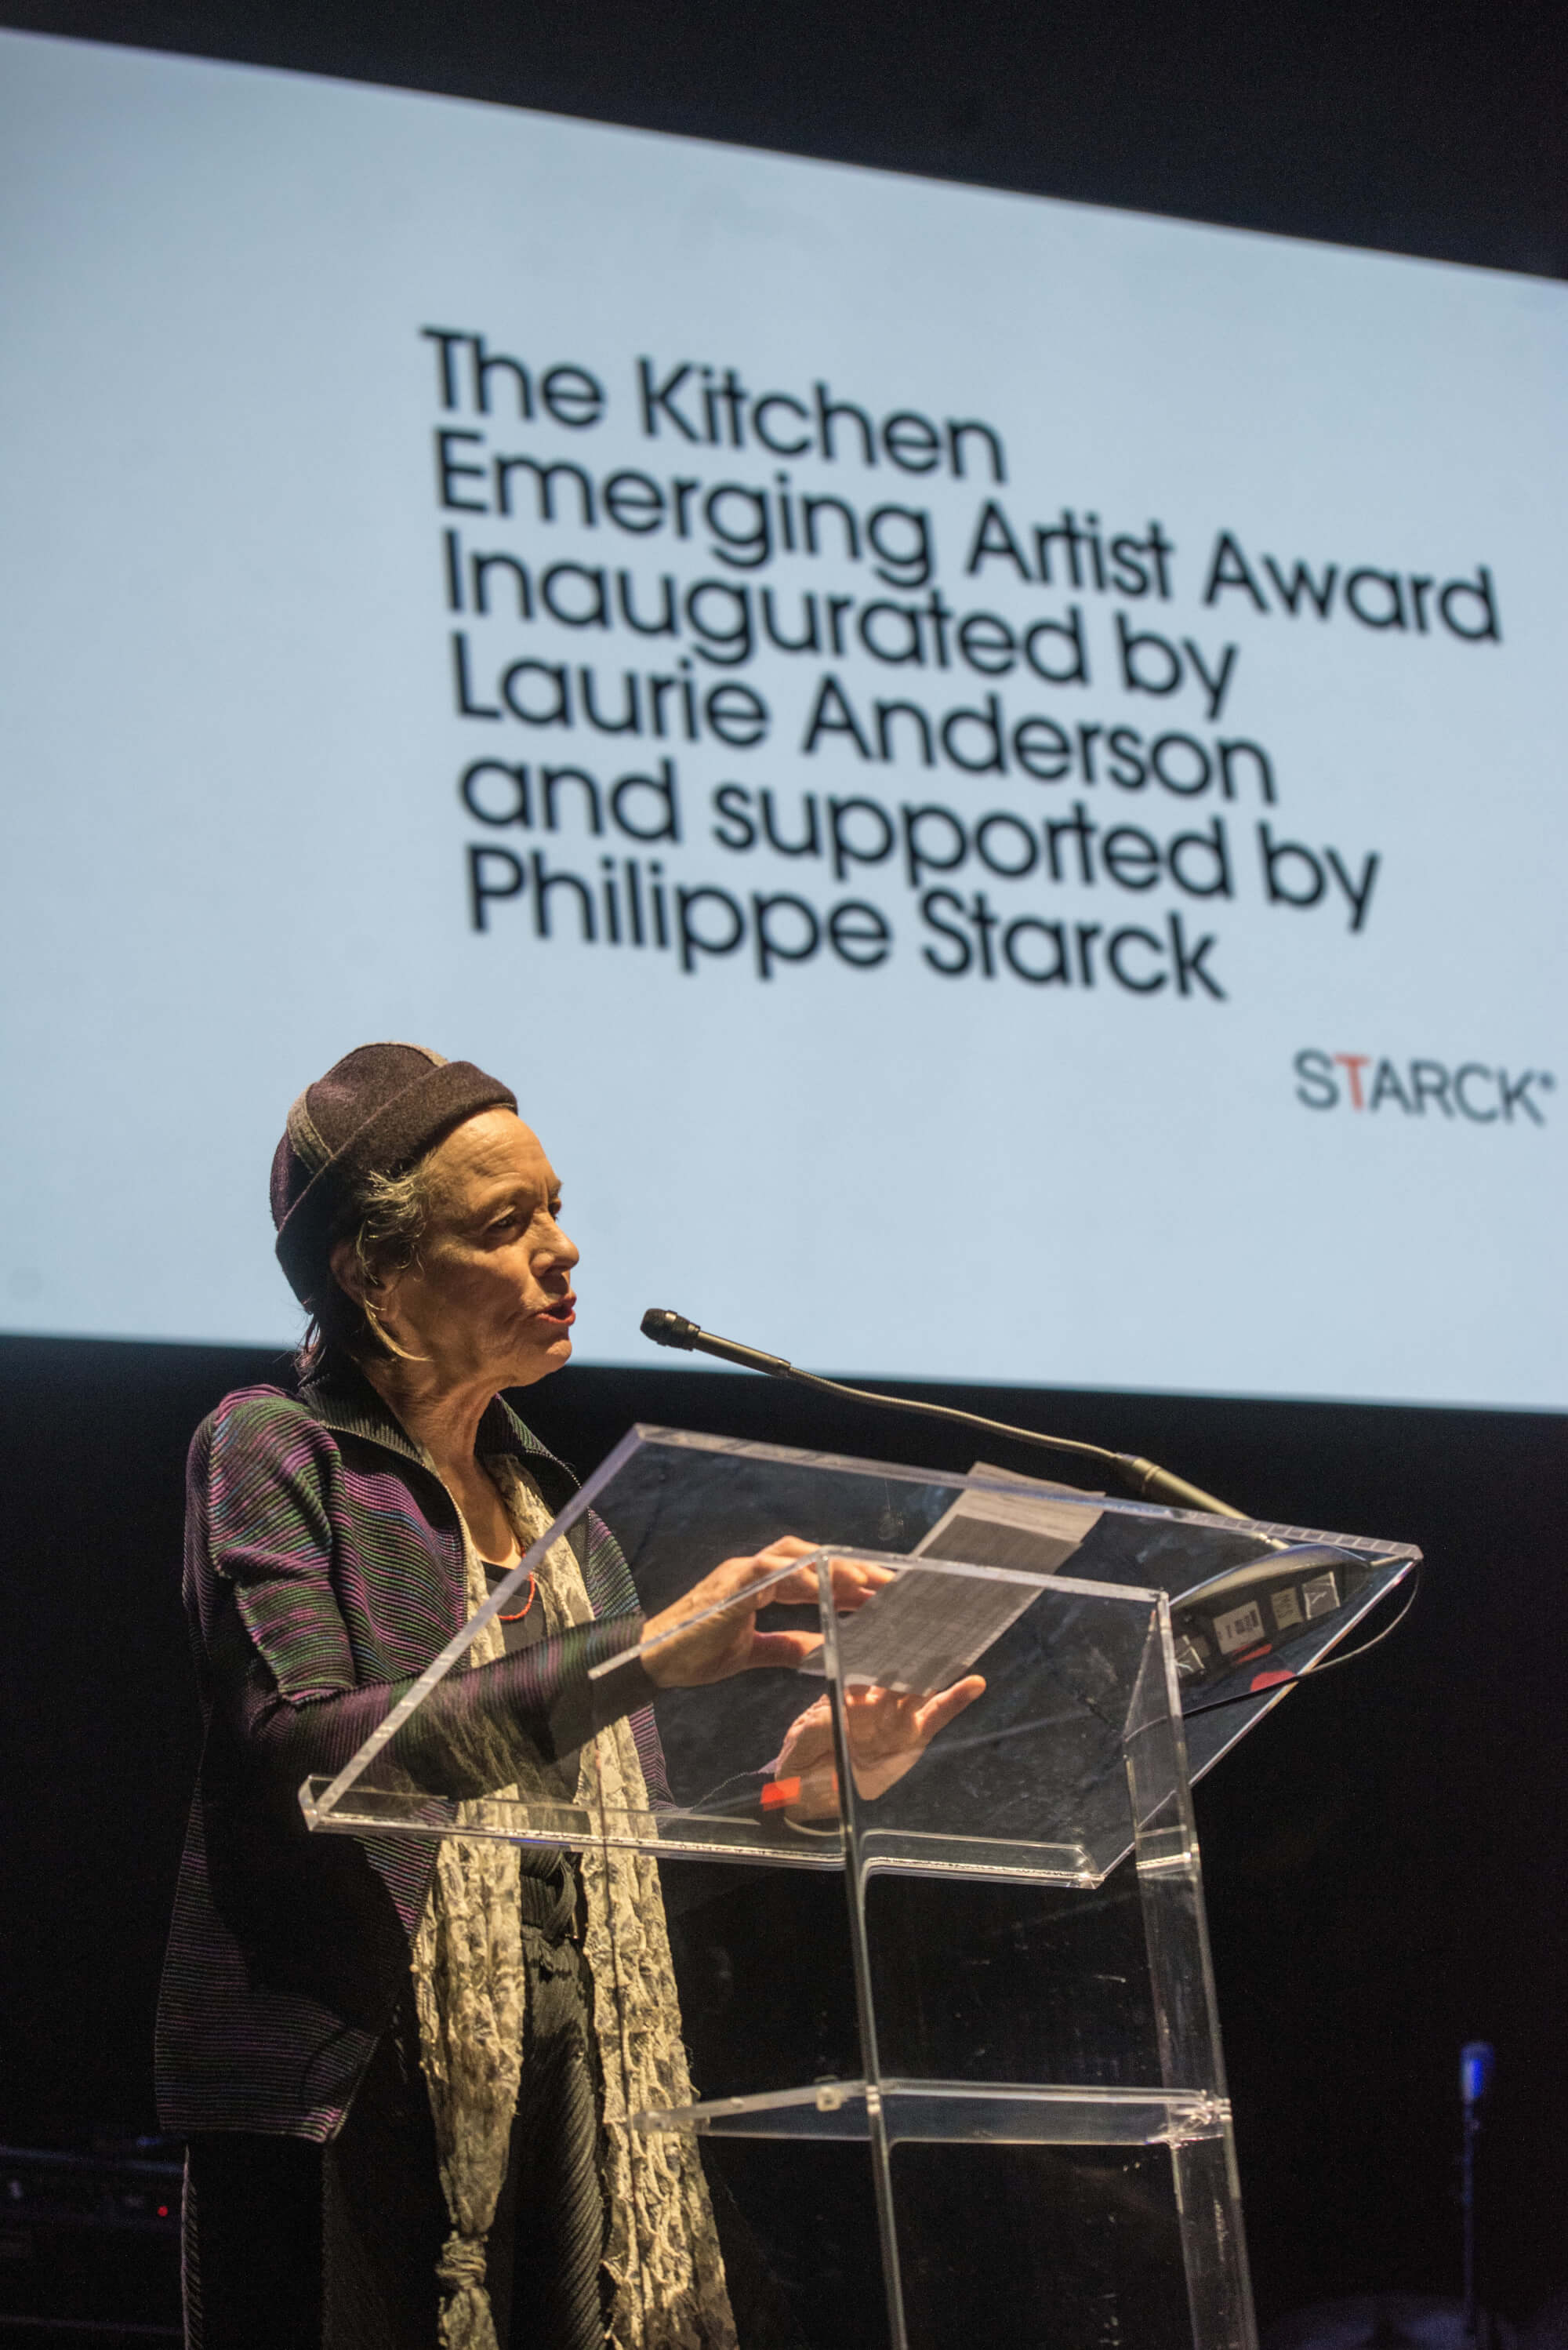 Starck supports the first The Kitchen Emerging Artist Award inaugurated by artist Laurie Anderson -